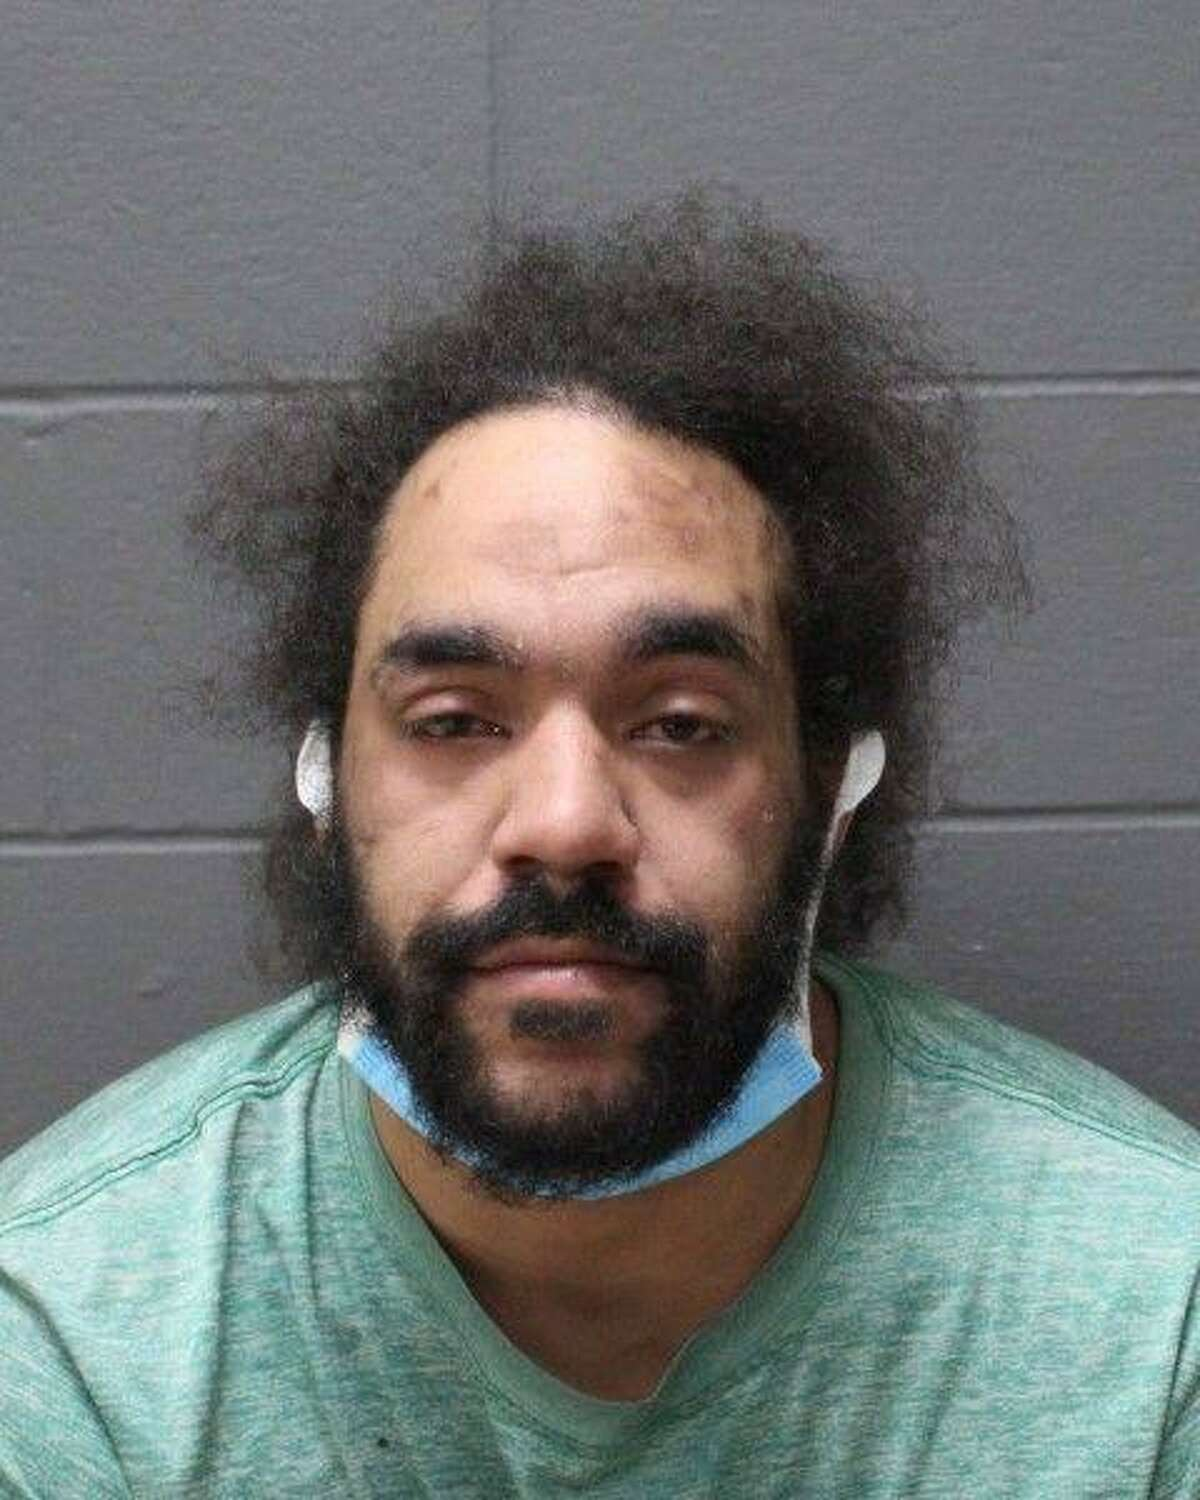 Anthony Williams, 28, of Barbour Street in Hartford, Conn., was charged with first-degree sexual assault, second-degree strangulation, second-degree breach of peace and interfering with an officer.